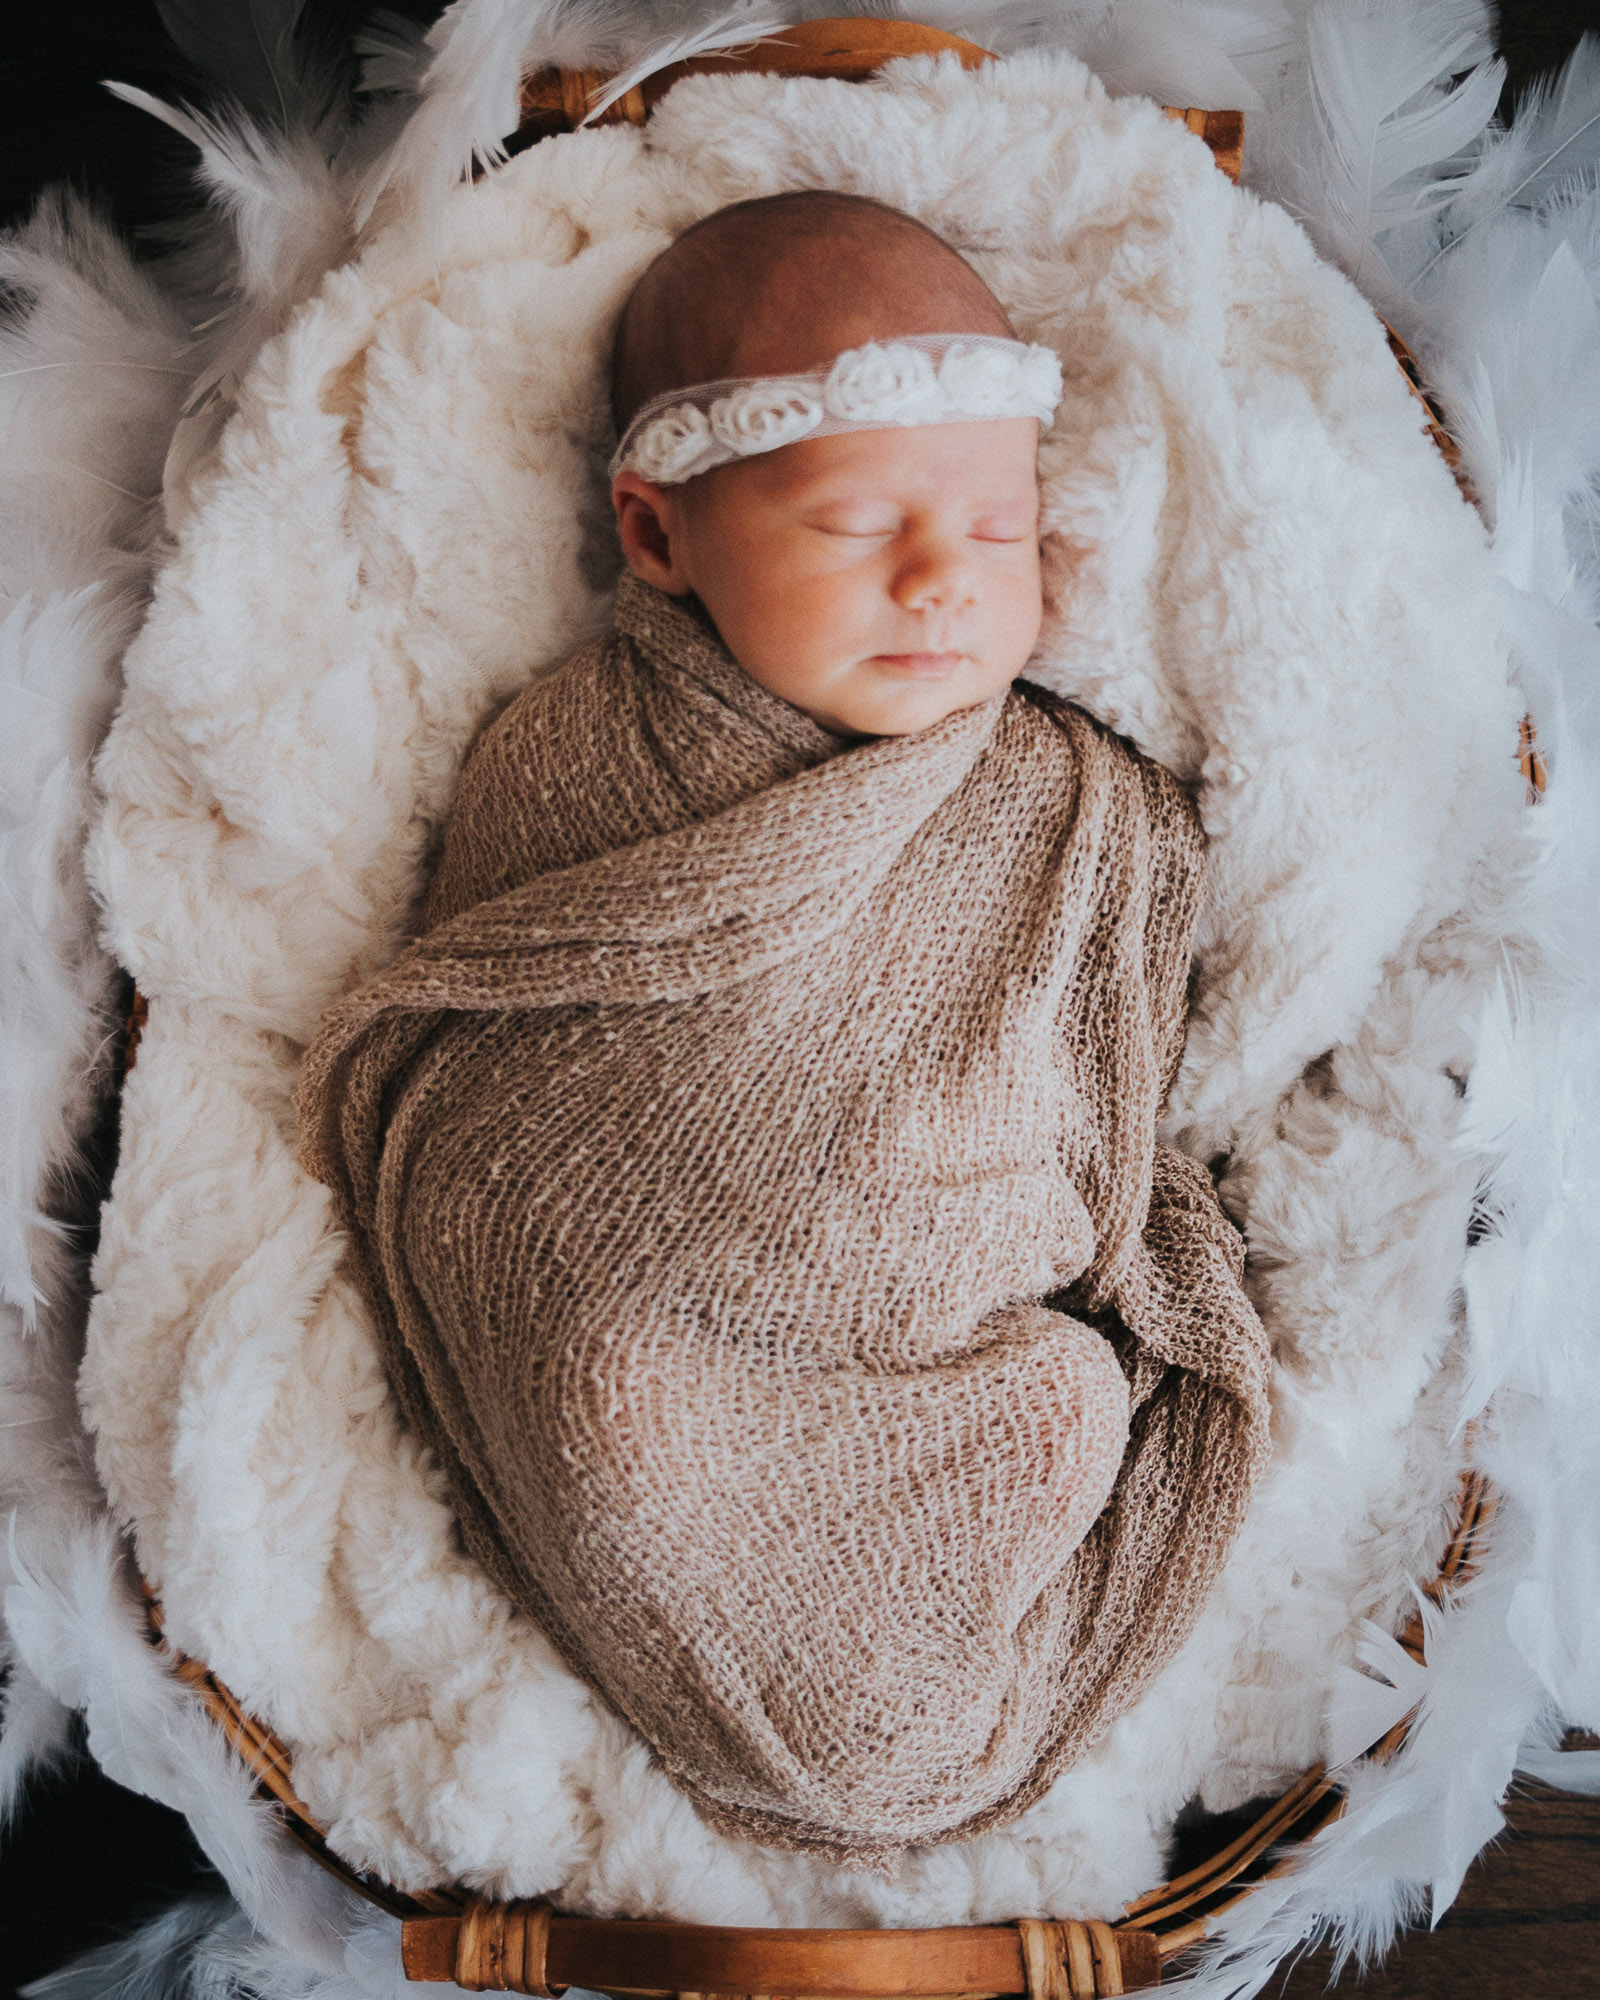 Newborn photographer on location in home Baby with headband on feathers